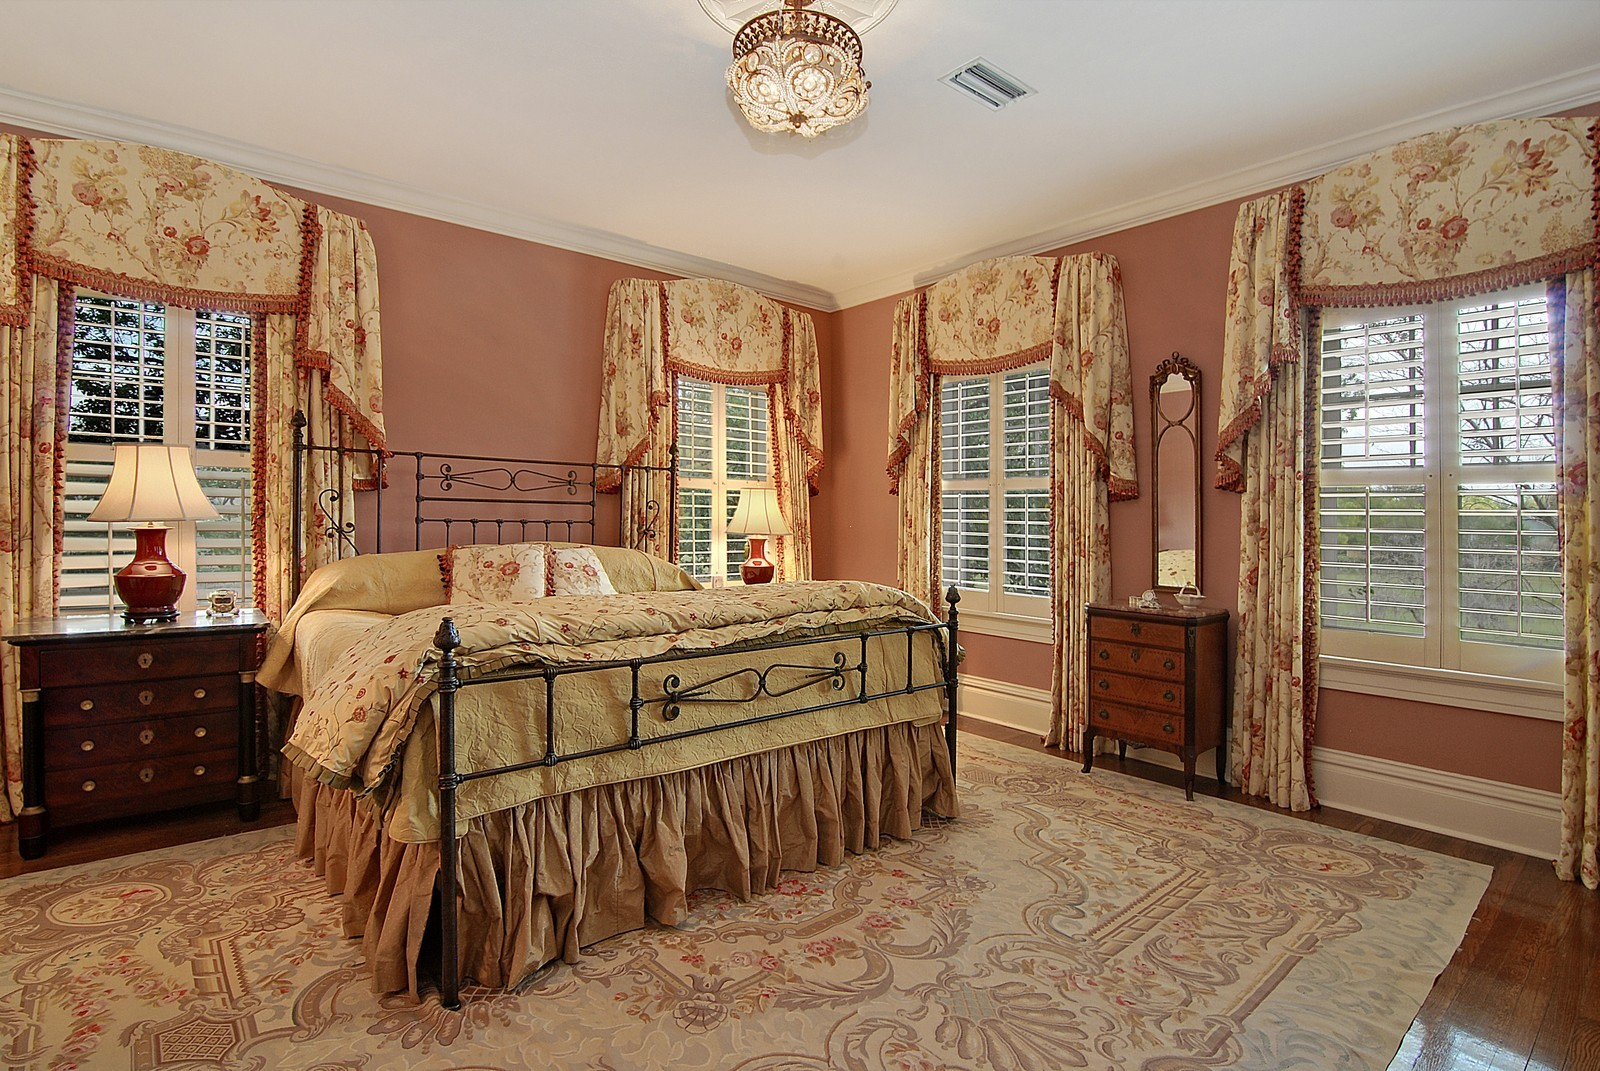 Real Estate Photography - 2223 S. Bendelow Trail, Tampa, FL, 33629 - Master Bedroom